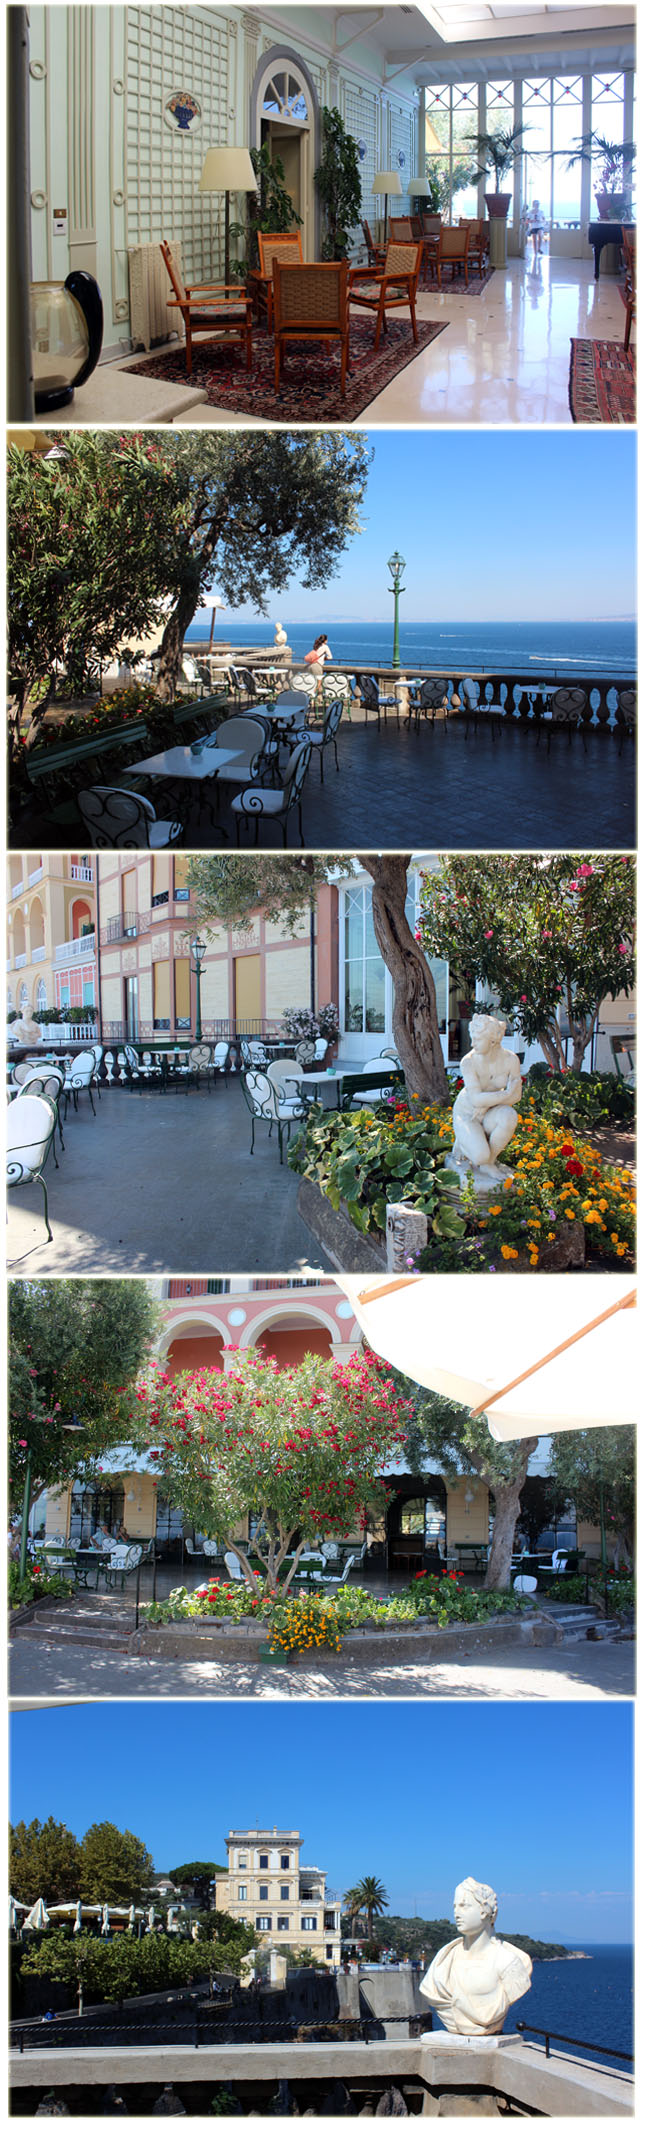 excelsior vittoria, sorrento, hoteis em sorrento, the leading hotels of the world, costa amalfitana, hotels na costa amalfitana, verao europeu, restaurants em sorrento,